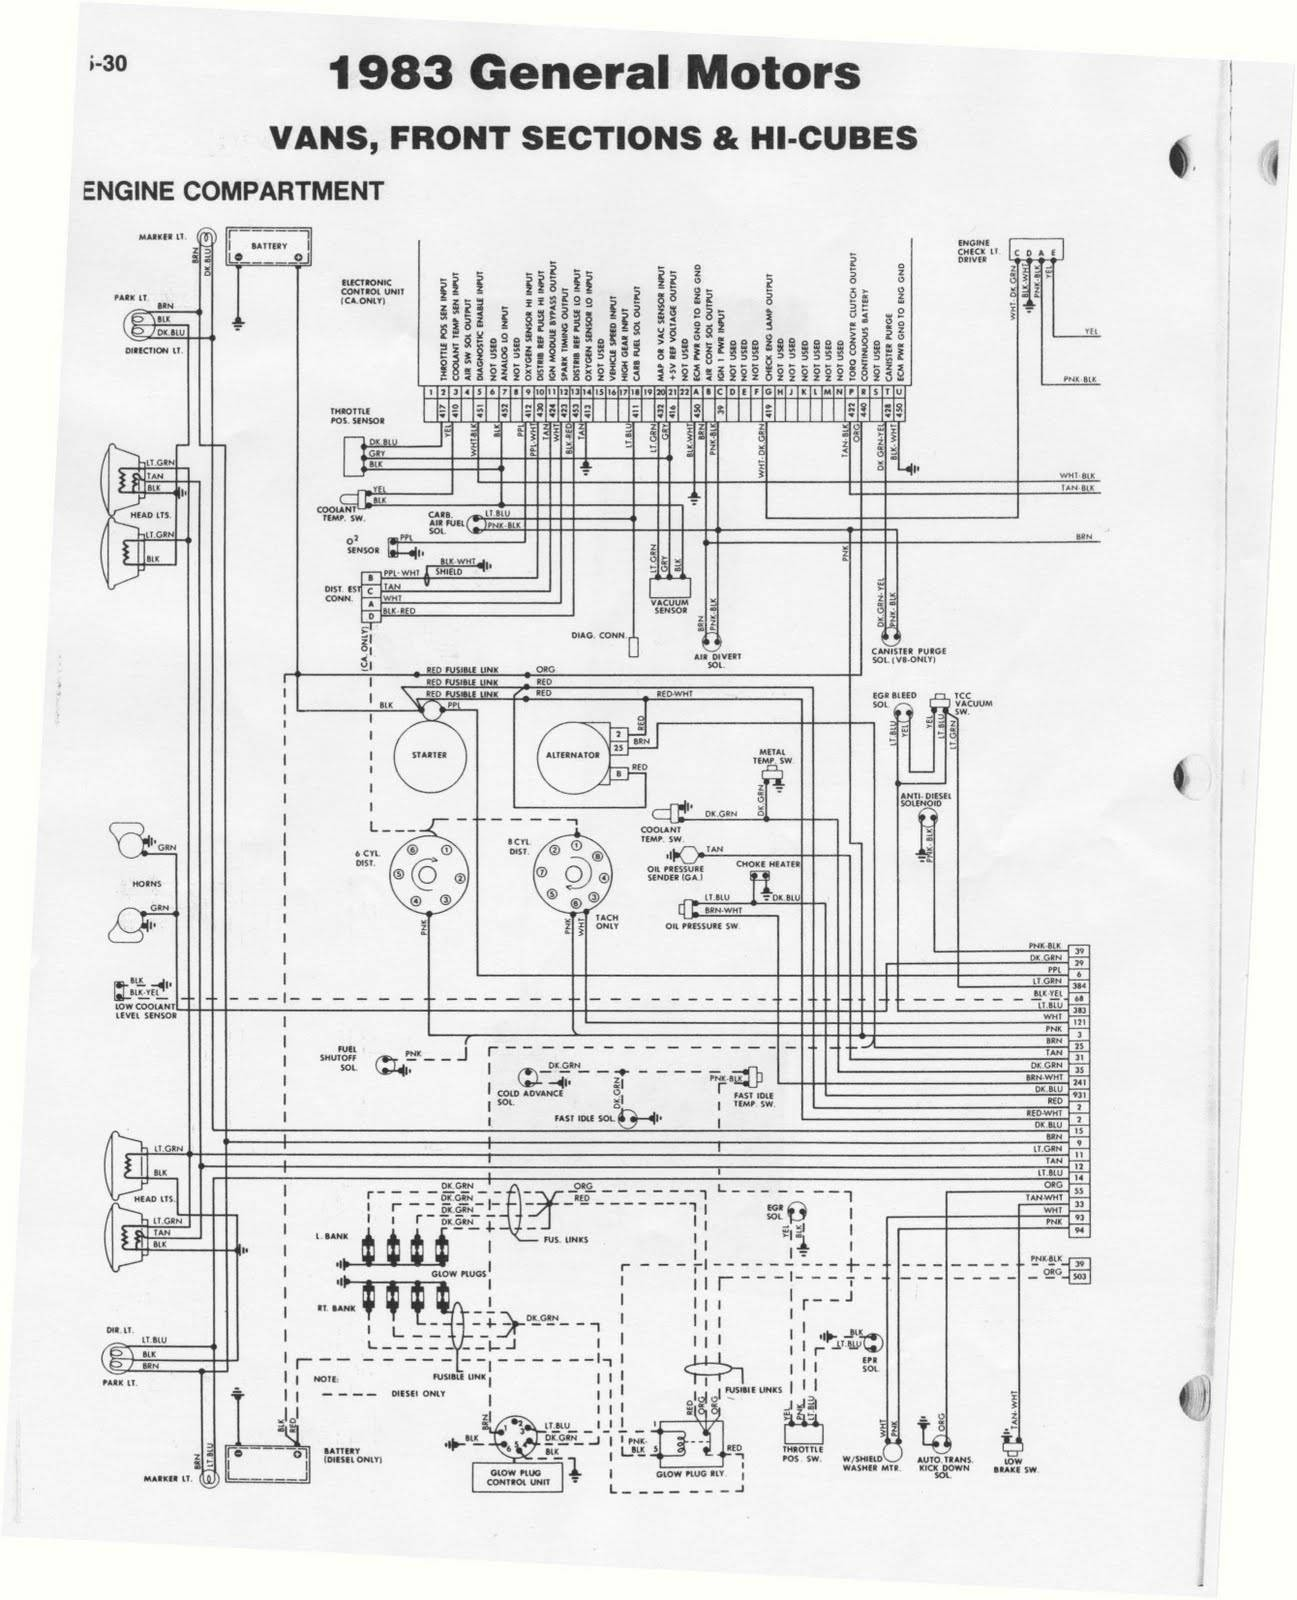 Chassis Parts Diagram Freightliner Xc Chassis Parts Diagram Inspirational Typical Wiring Of Chassis Parts Diagram Freightliner Xc Chassis Parts Diagram Awesome 2008 Blue Bird Bus